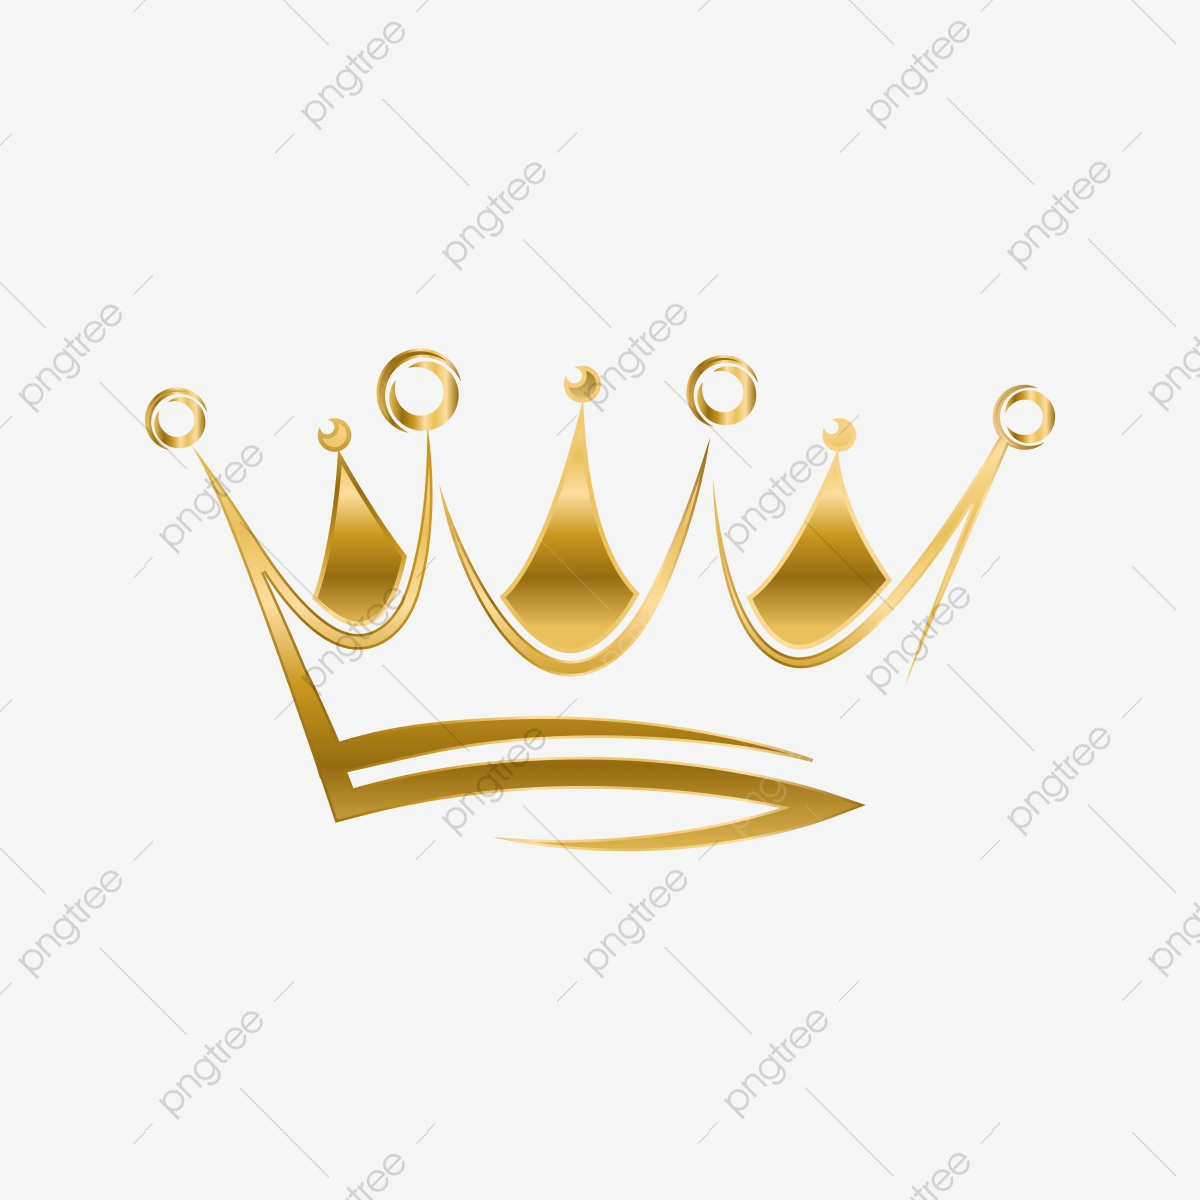 Cartoon Crown Png Images Vector And Psd Files Free Download On Pngtree Download a free preview or high quality adobe illustrator ai, eps. https pngtree com freepng golden crown vector design 5415535 html